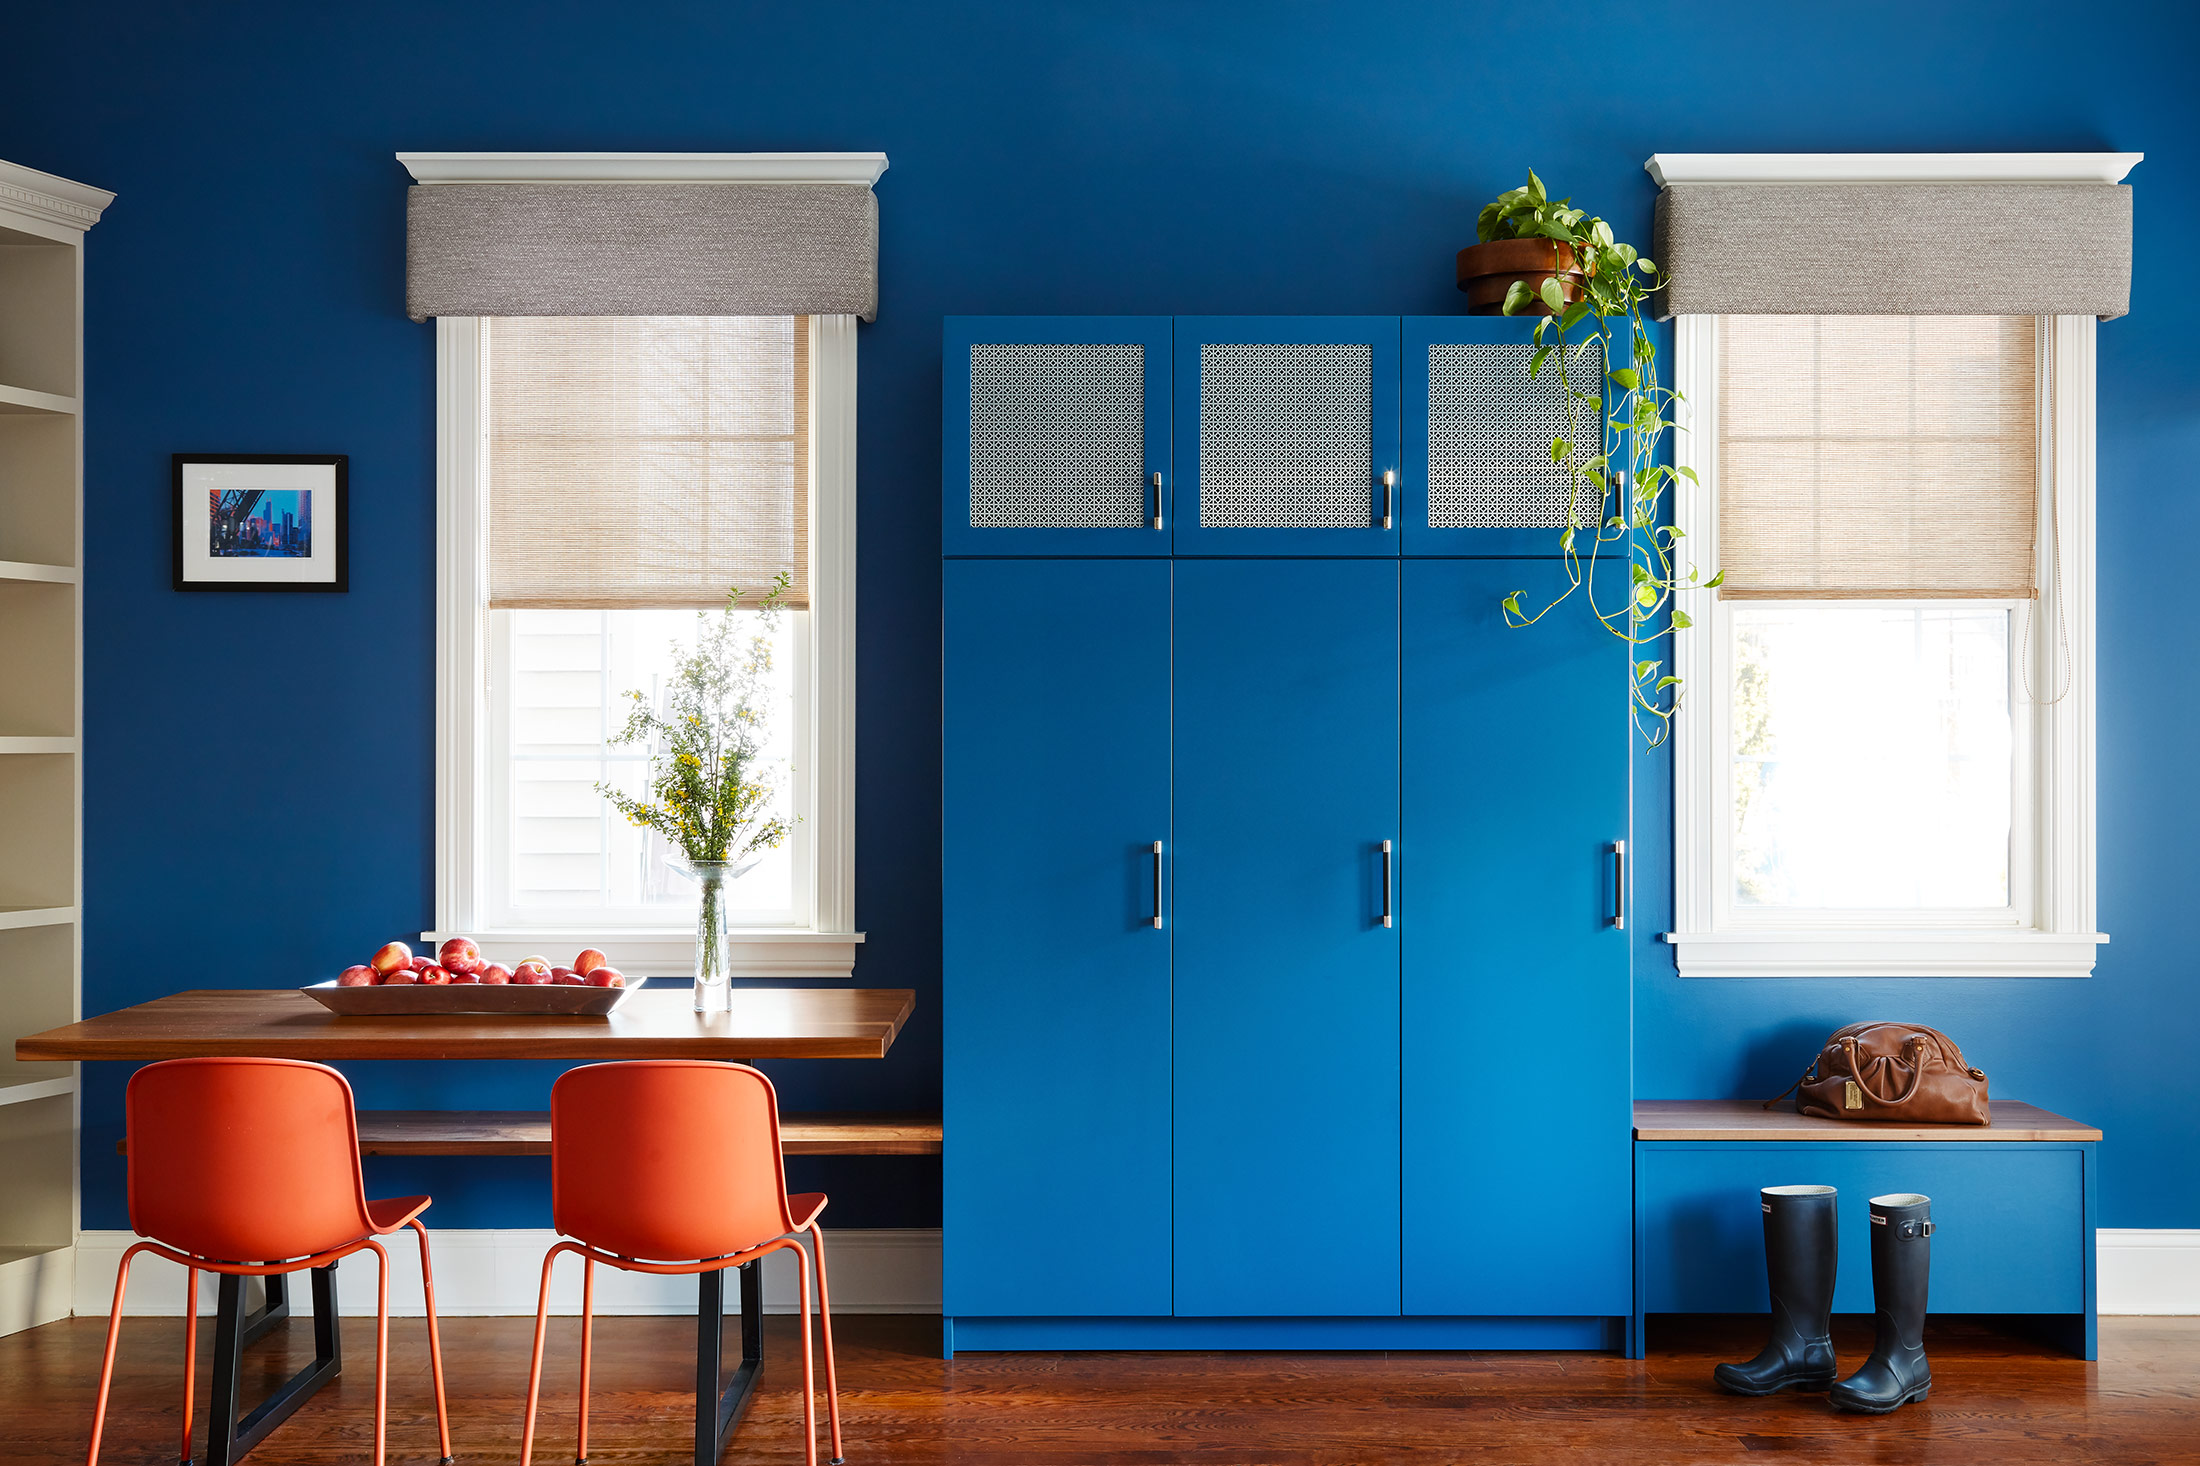 unpatterned-chicago-interiordesign-openconcept-bluecabinet.jpg